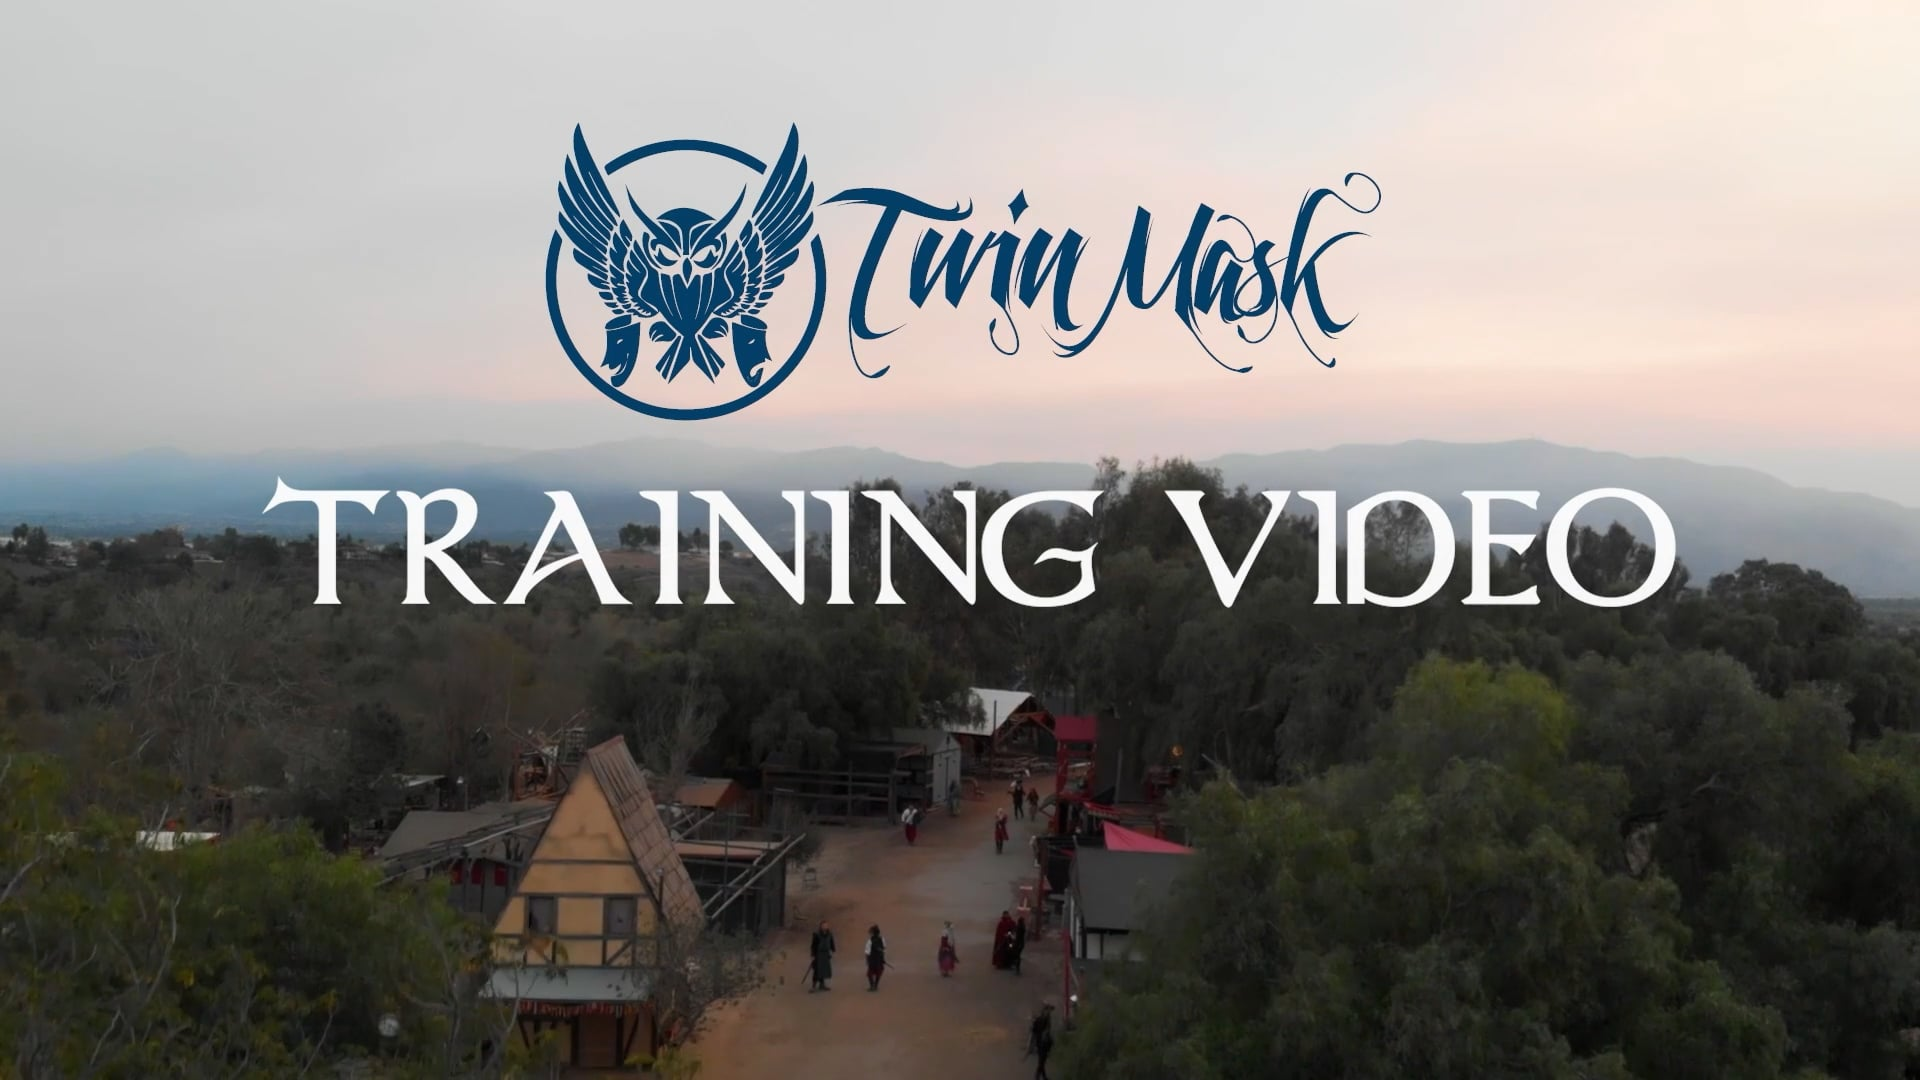 Twin Mask's Videos